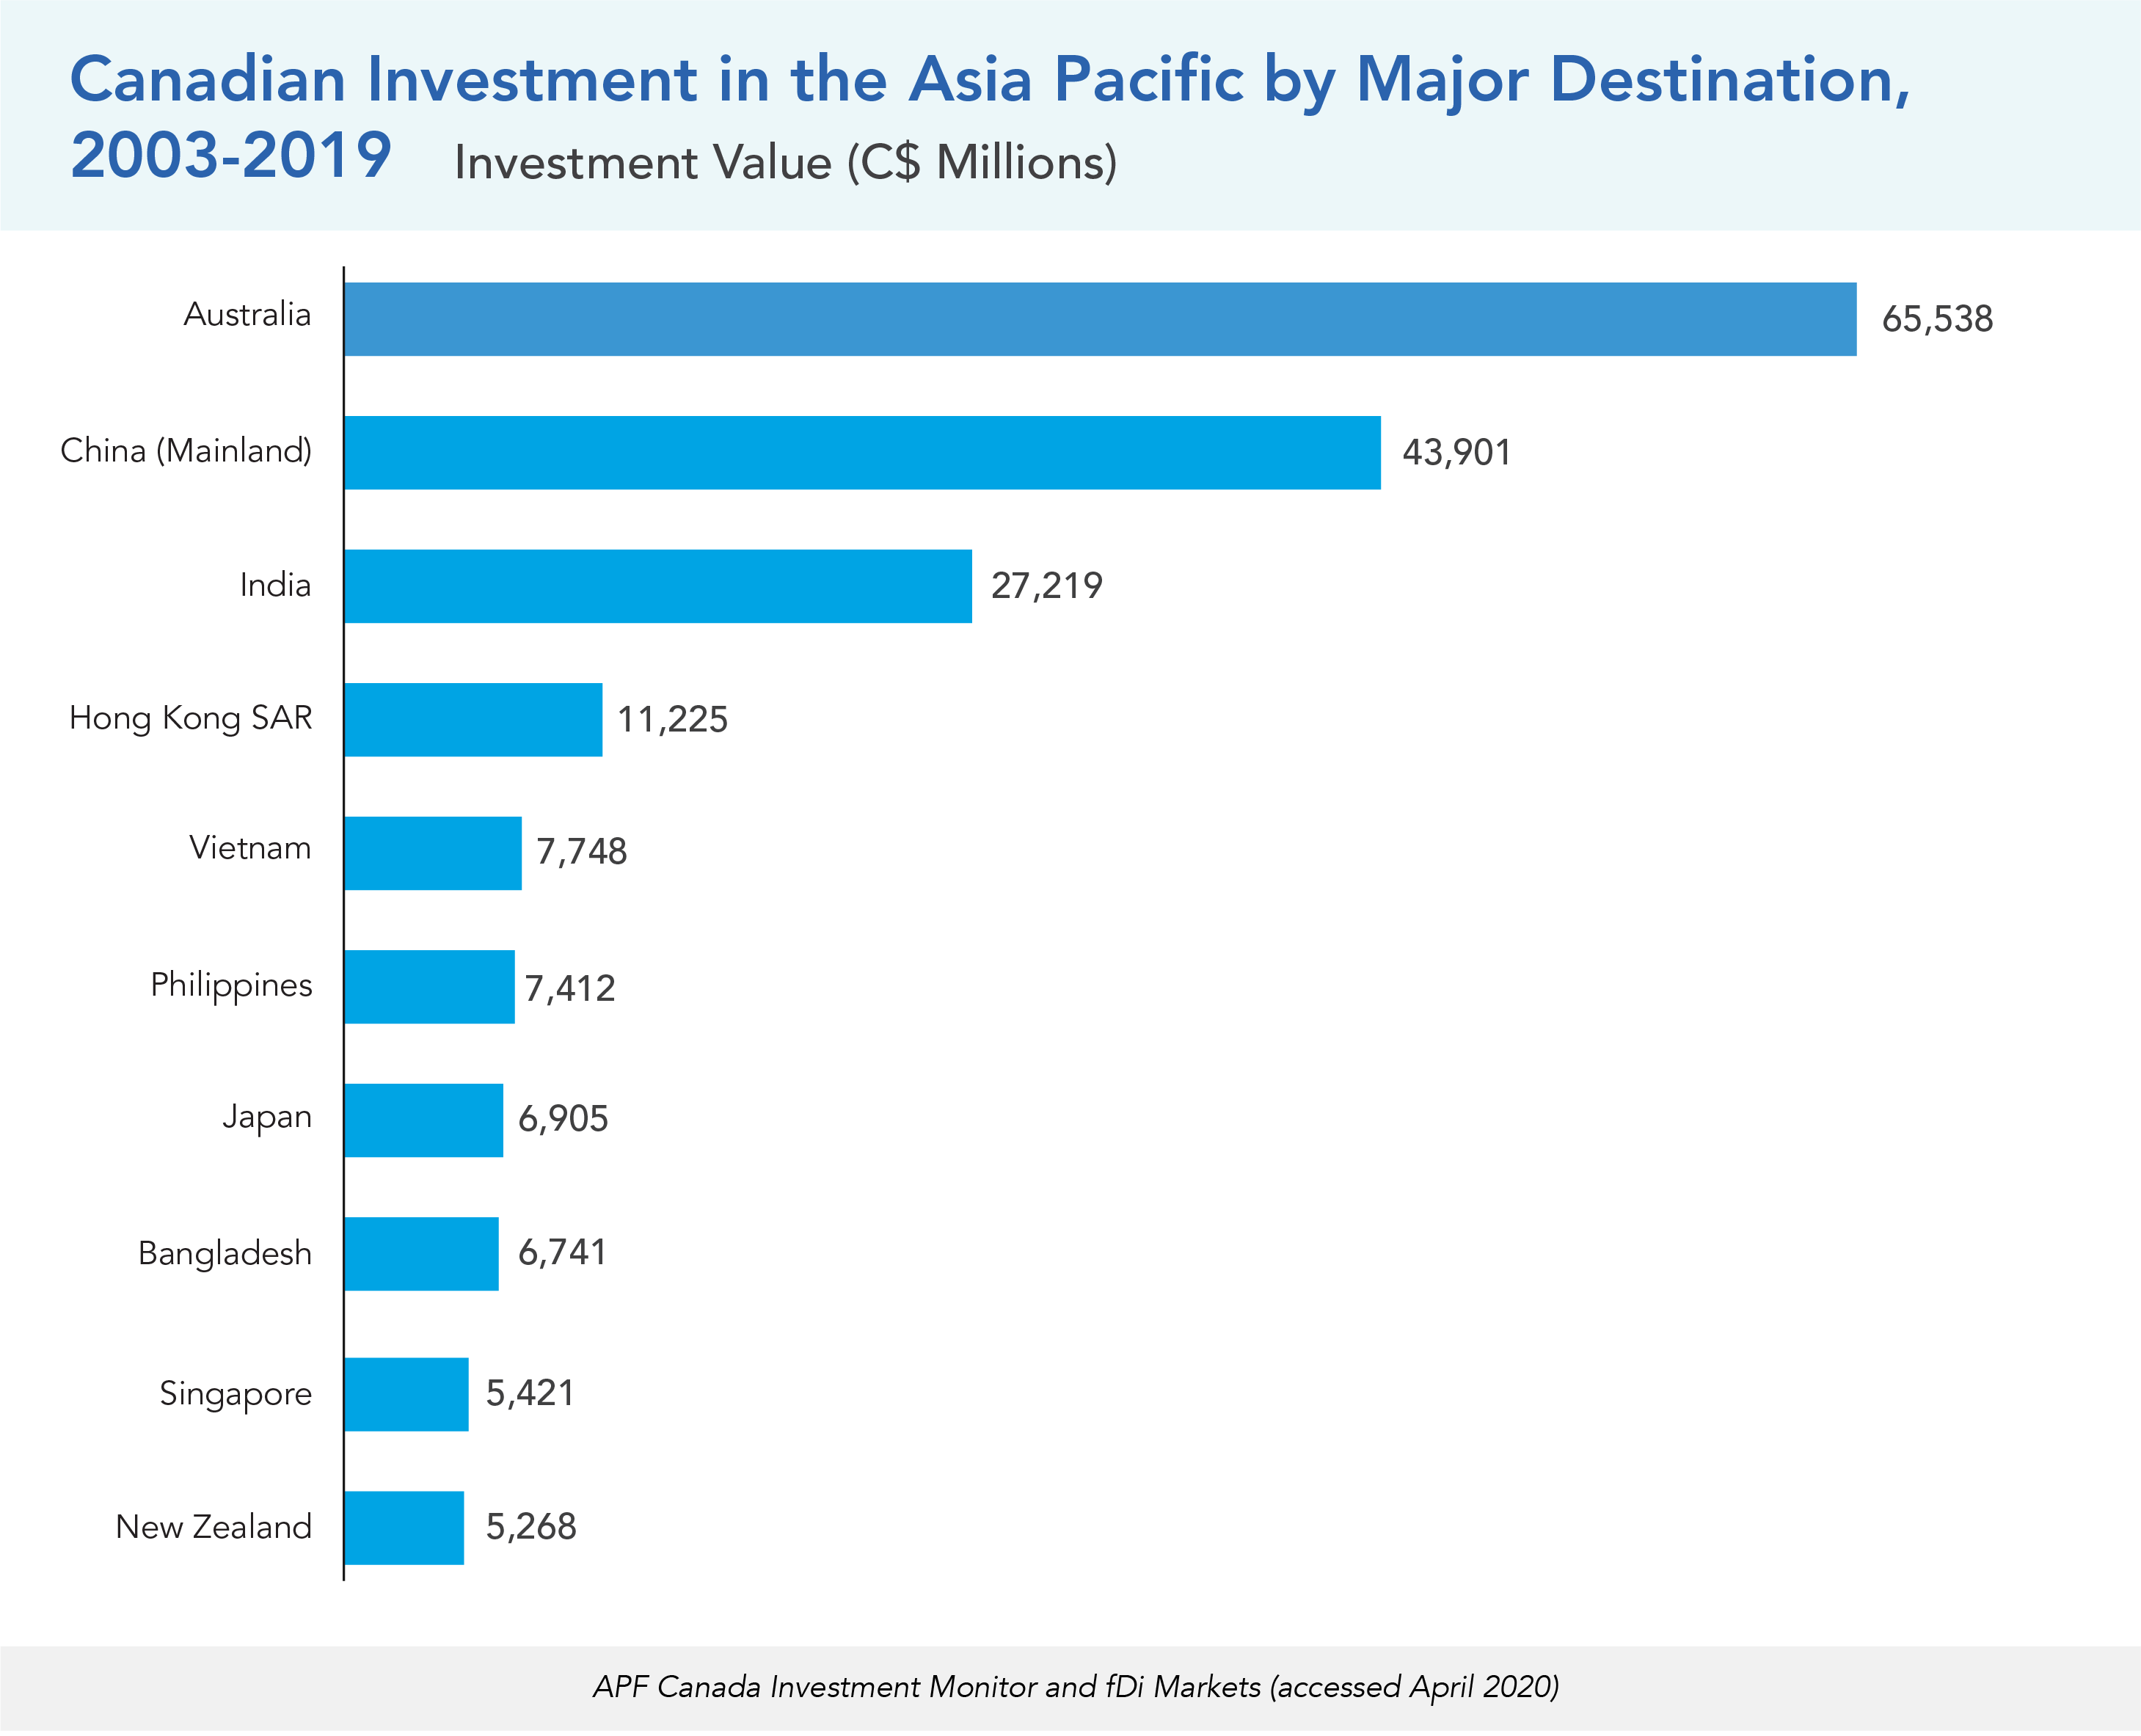 Canadian Investment in the Asia Pacific by Major Destination, 2003-2019